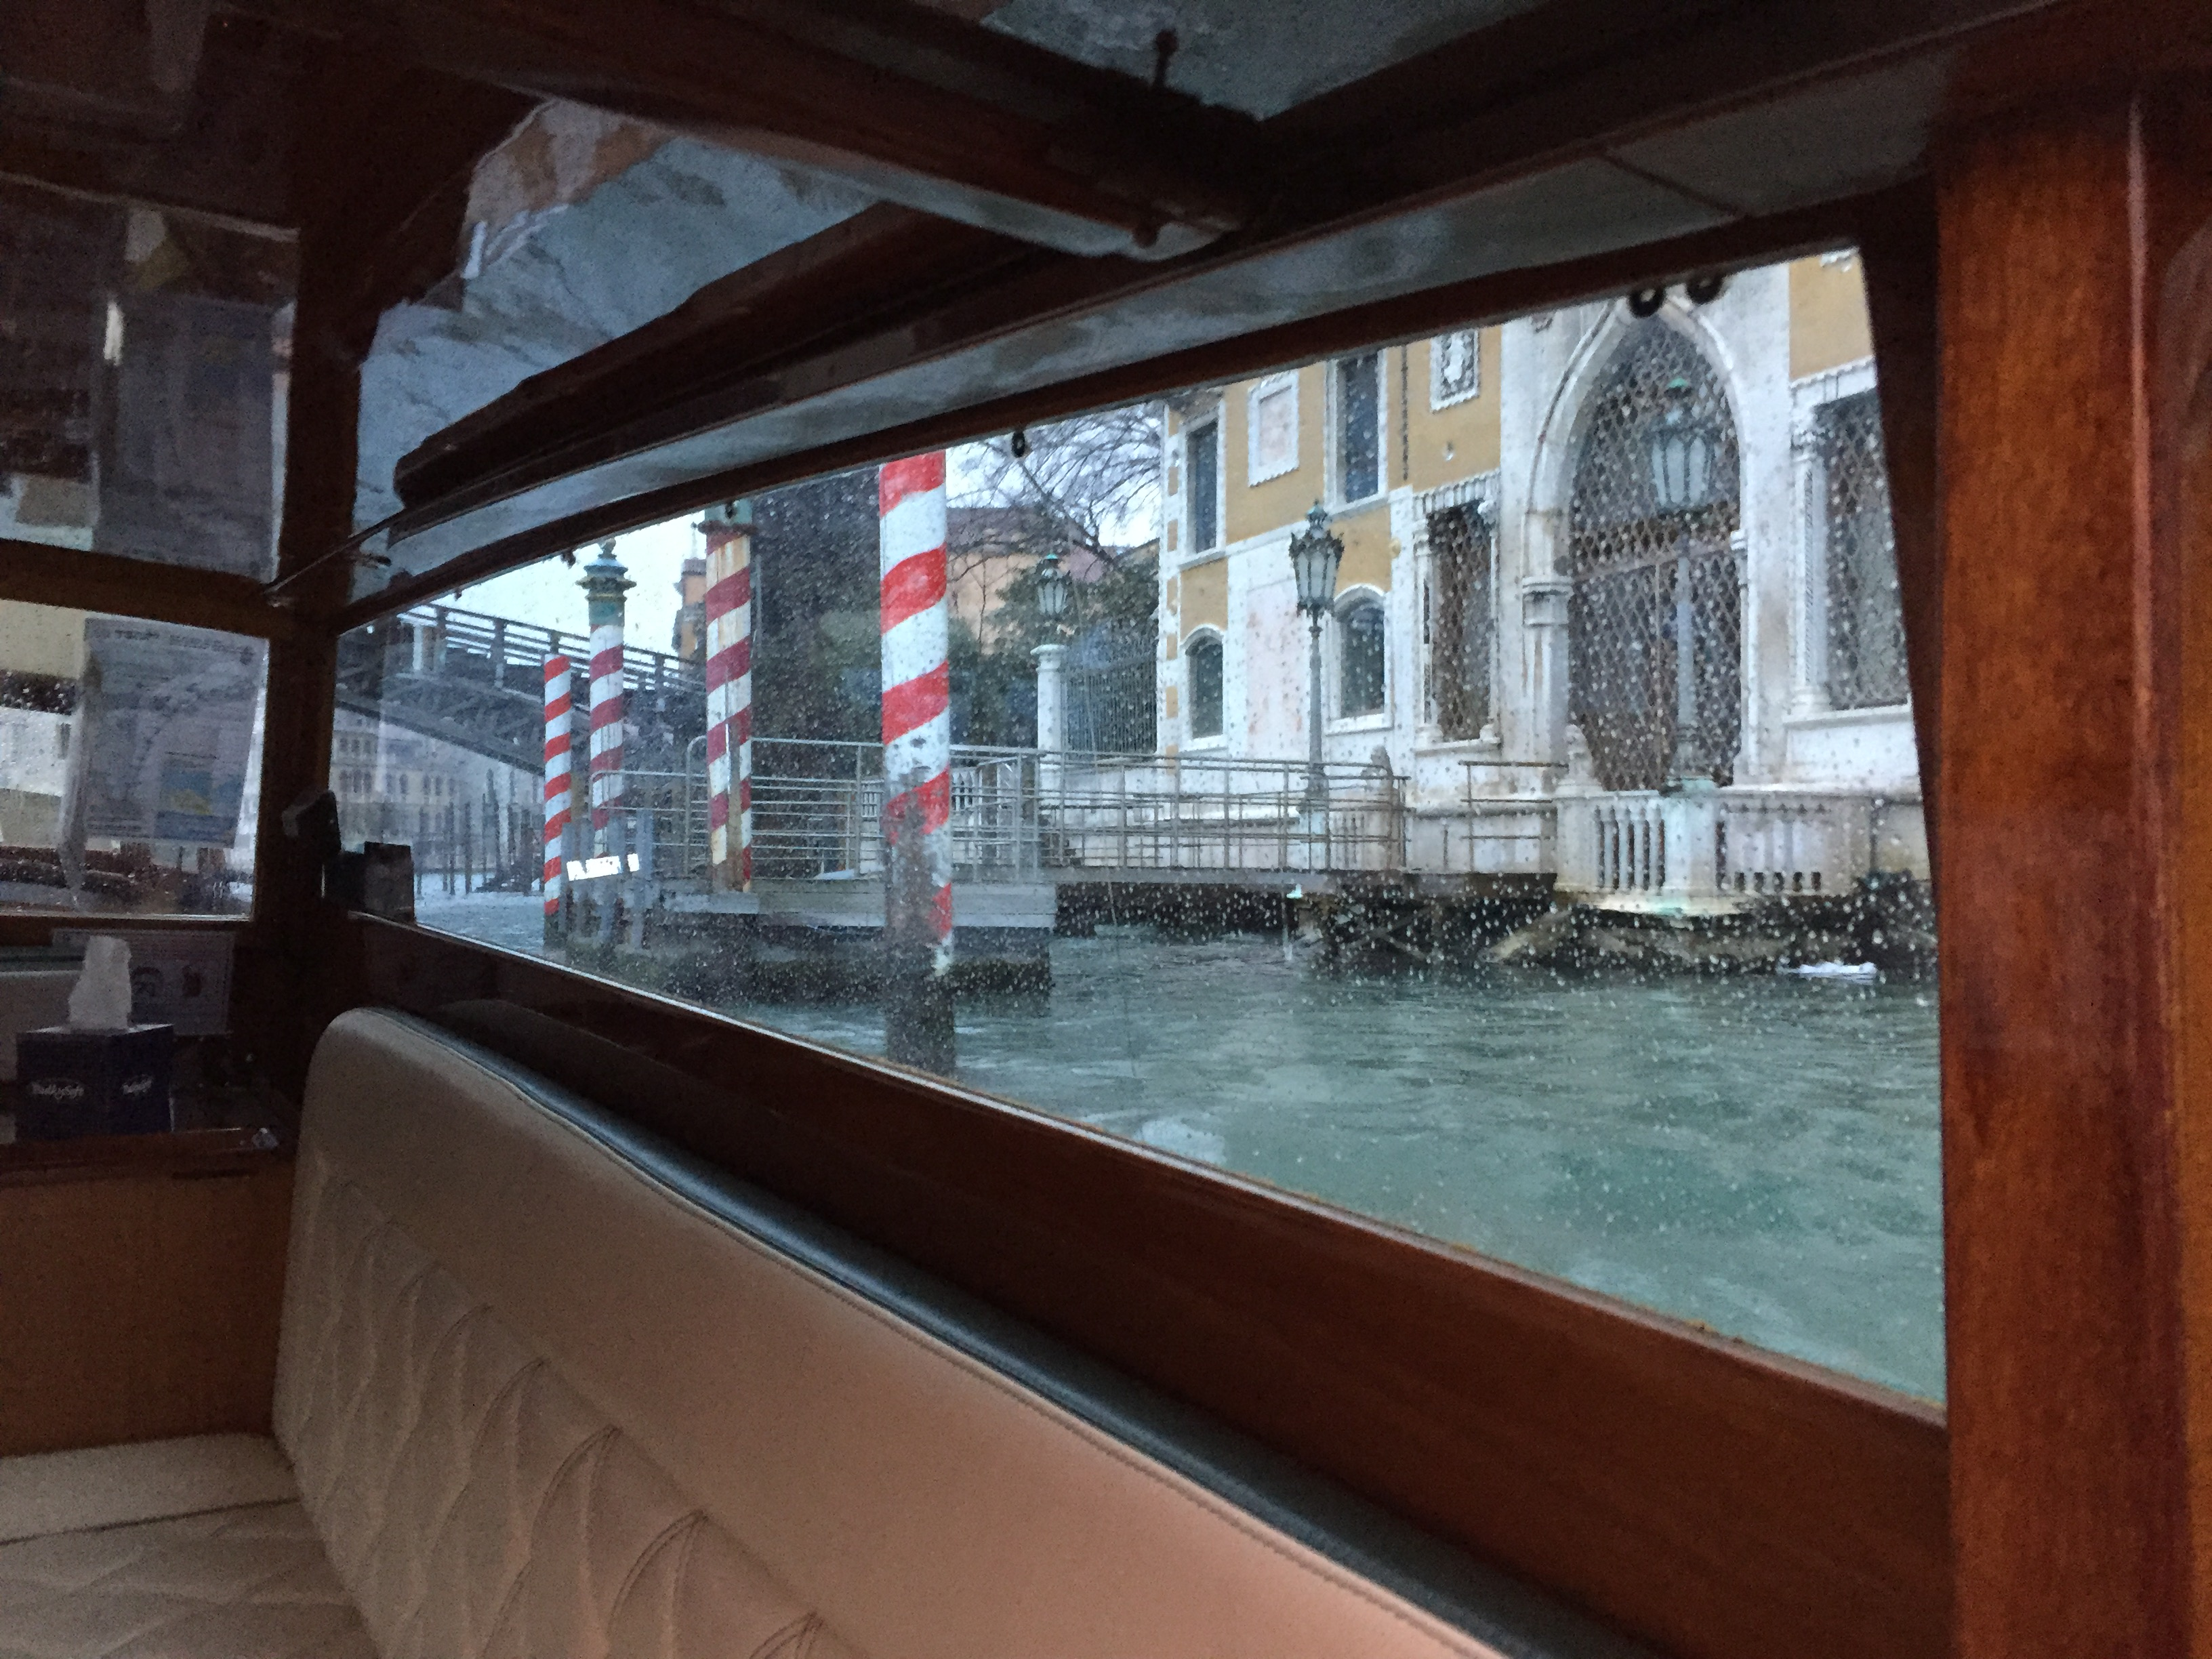 Finding rain in Venice? All the more reason to travel by boat taxi. Photo credit: Michael Ciavardini